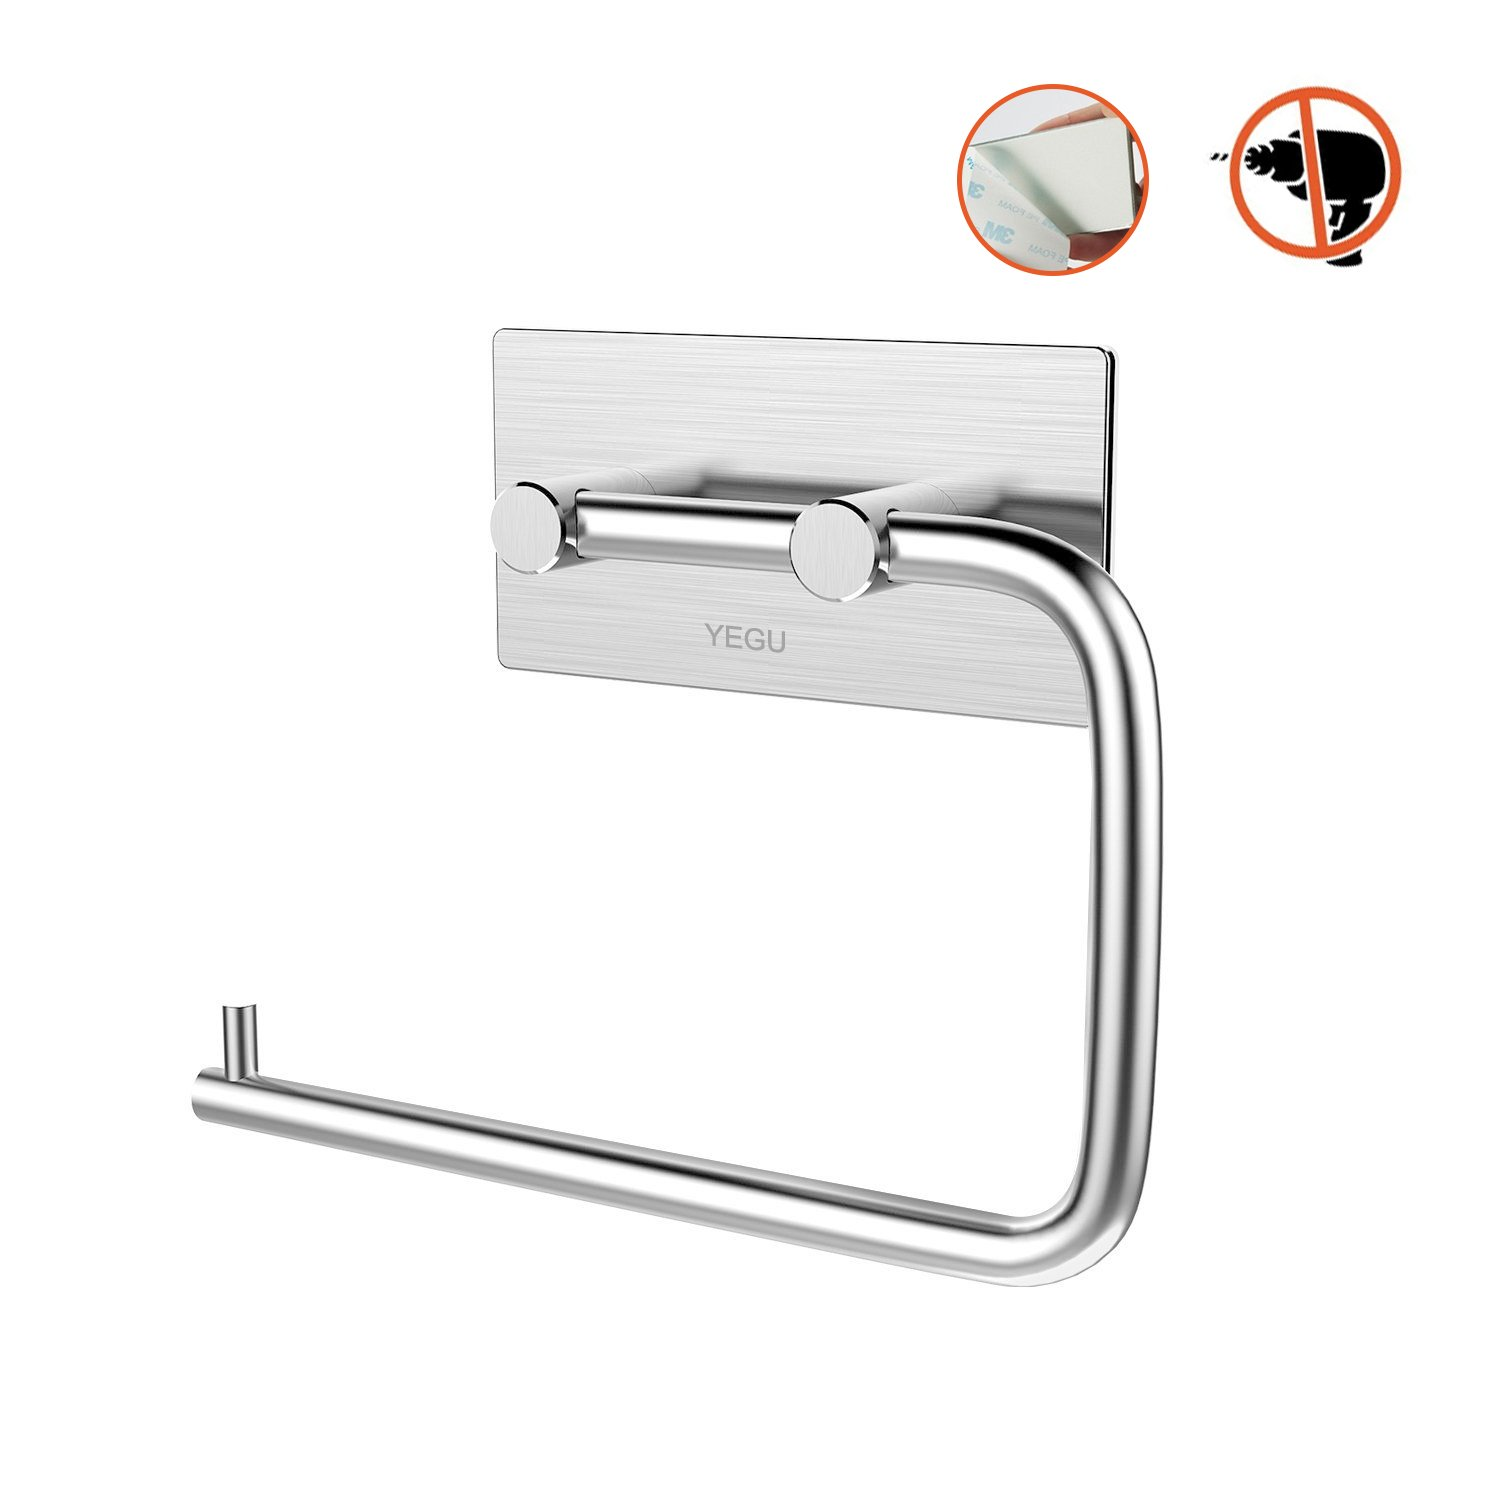 Yegu 3m Self Adhesive Toilet Roll Paper Holder Brushed Stainless